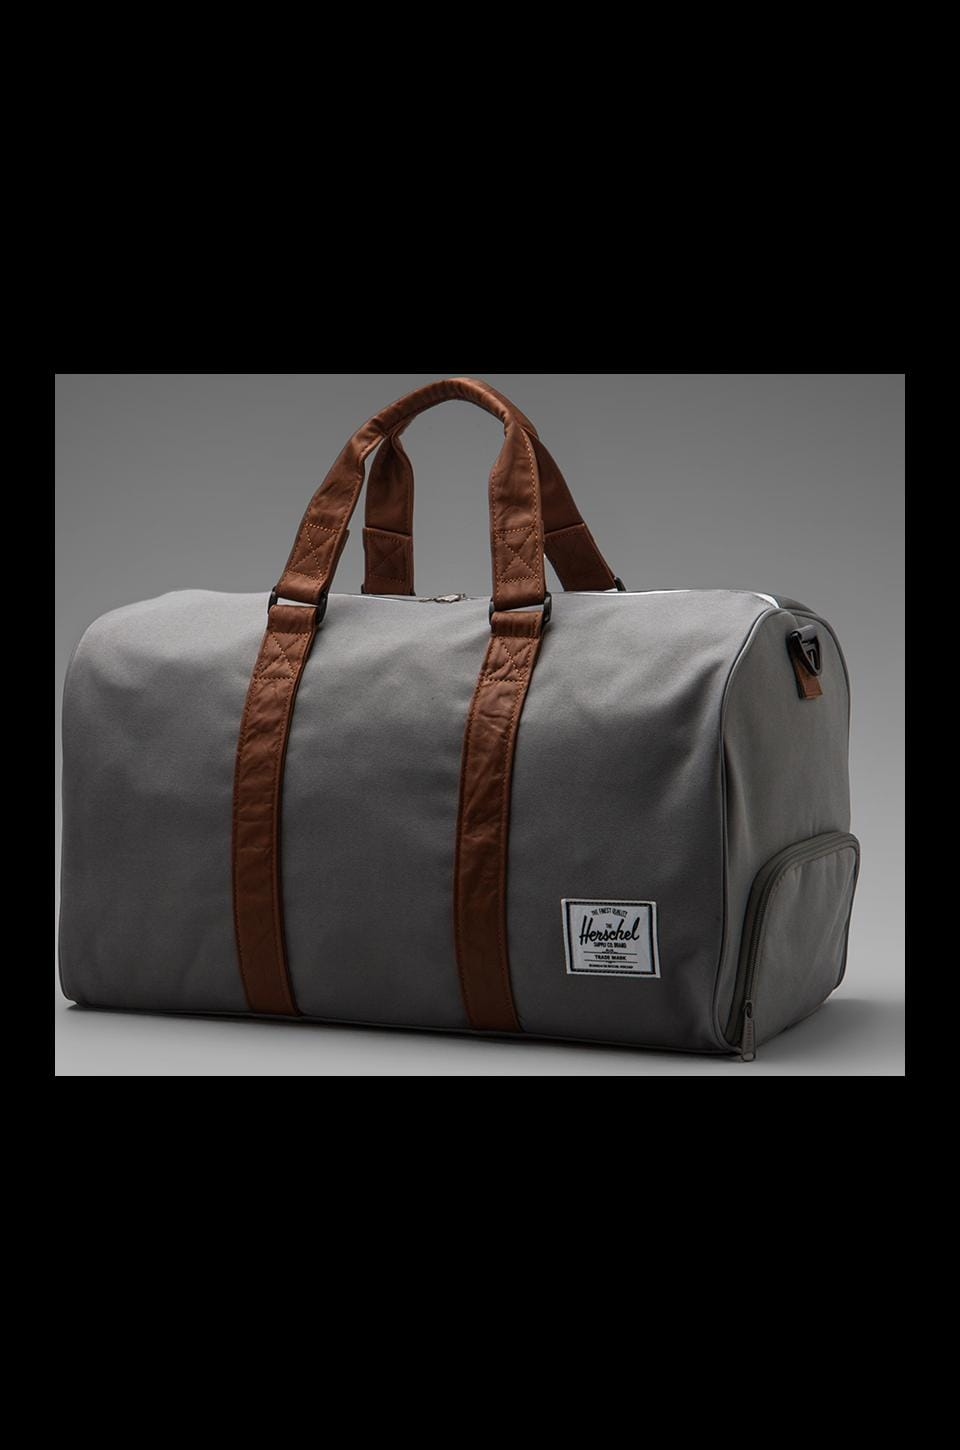 Herschel Supply Co. Novel Duffle Bag in Grey